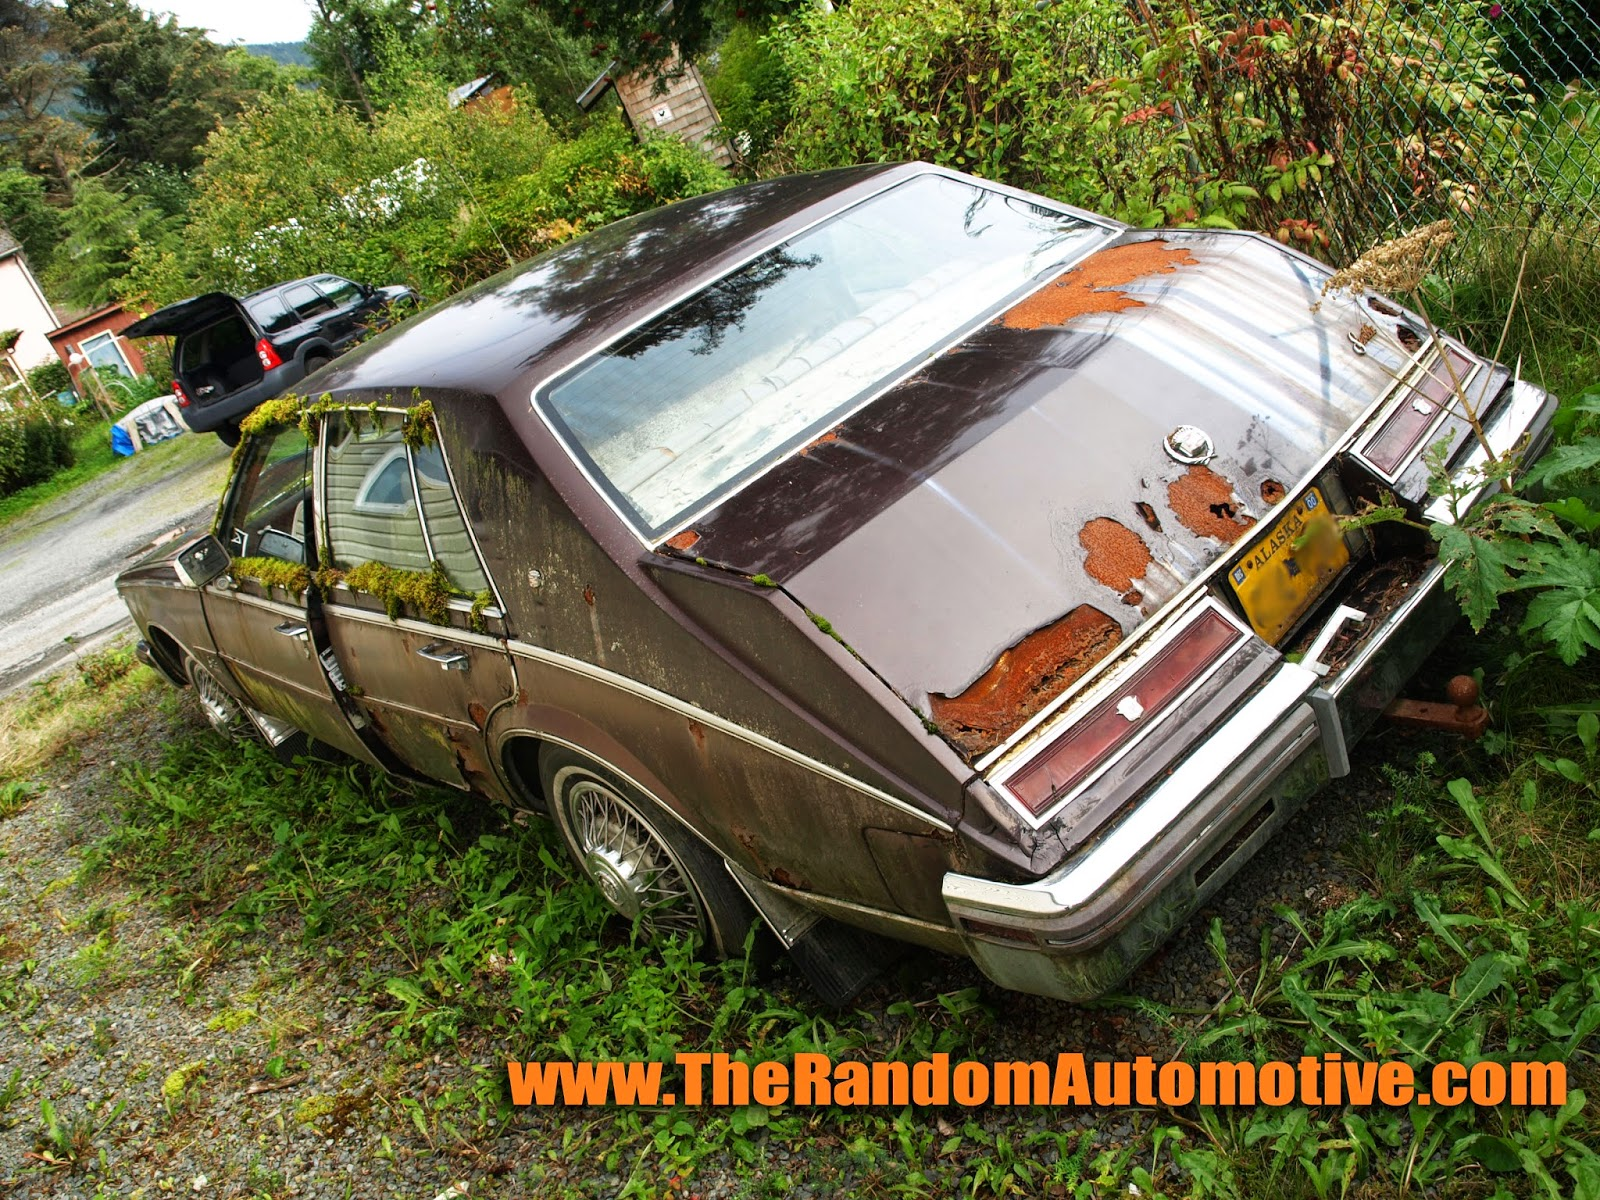 abandoned 1980 cadillac seville sitka alaska rotting in style gm dylan benson